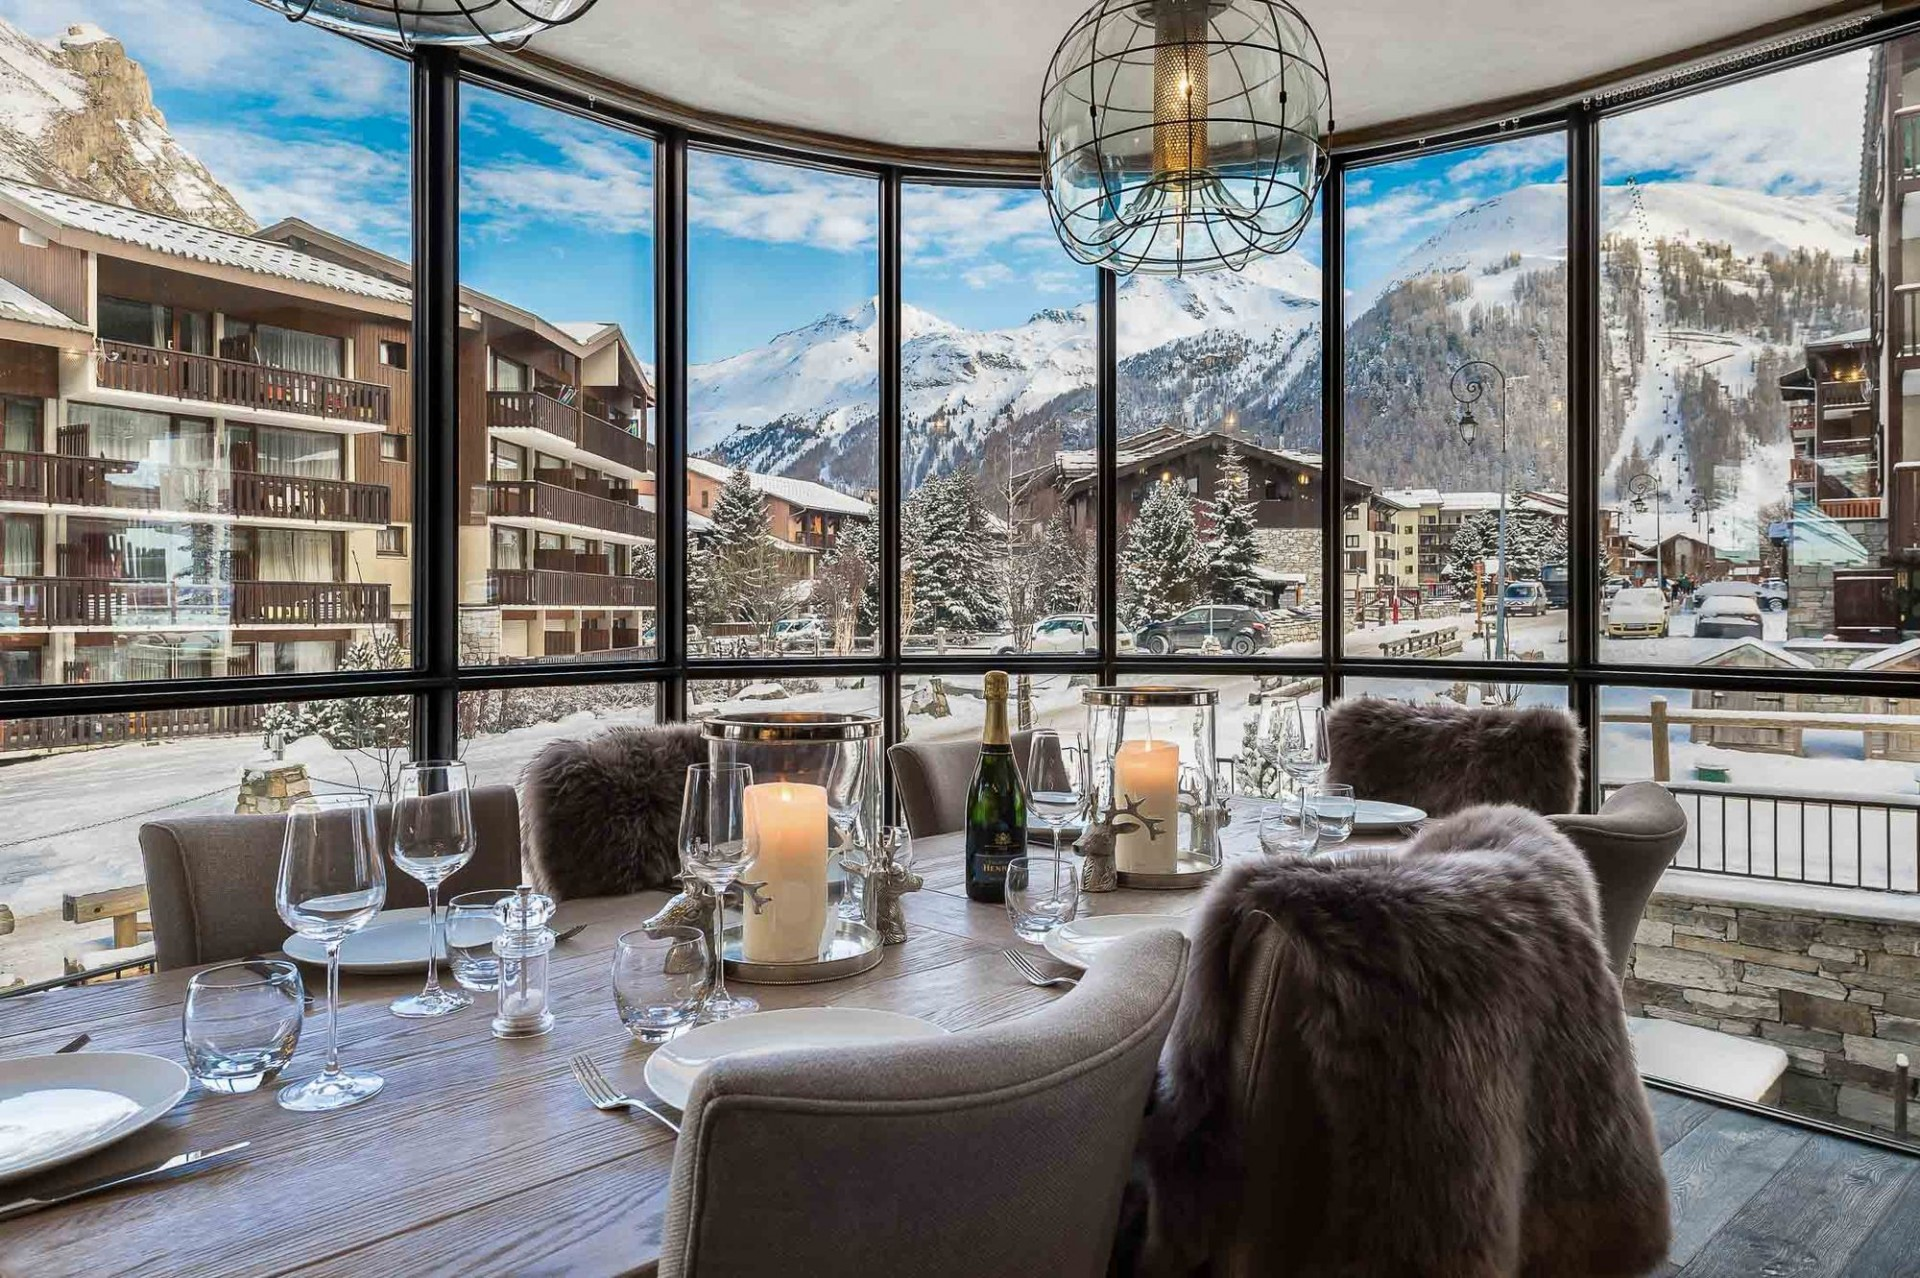 Val d'Isère Location Appartement Luxe Ulilite Salle A Manger